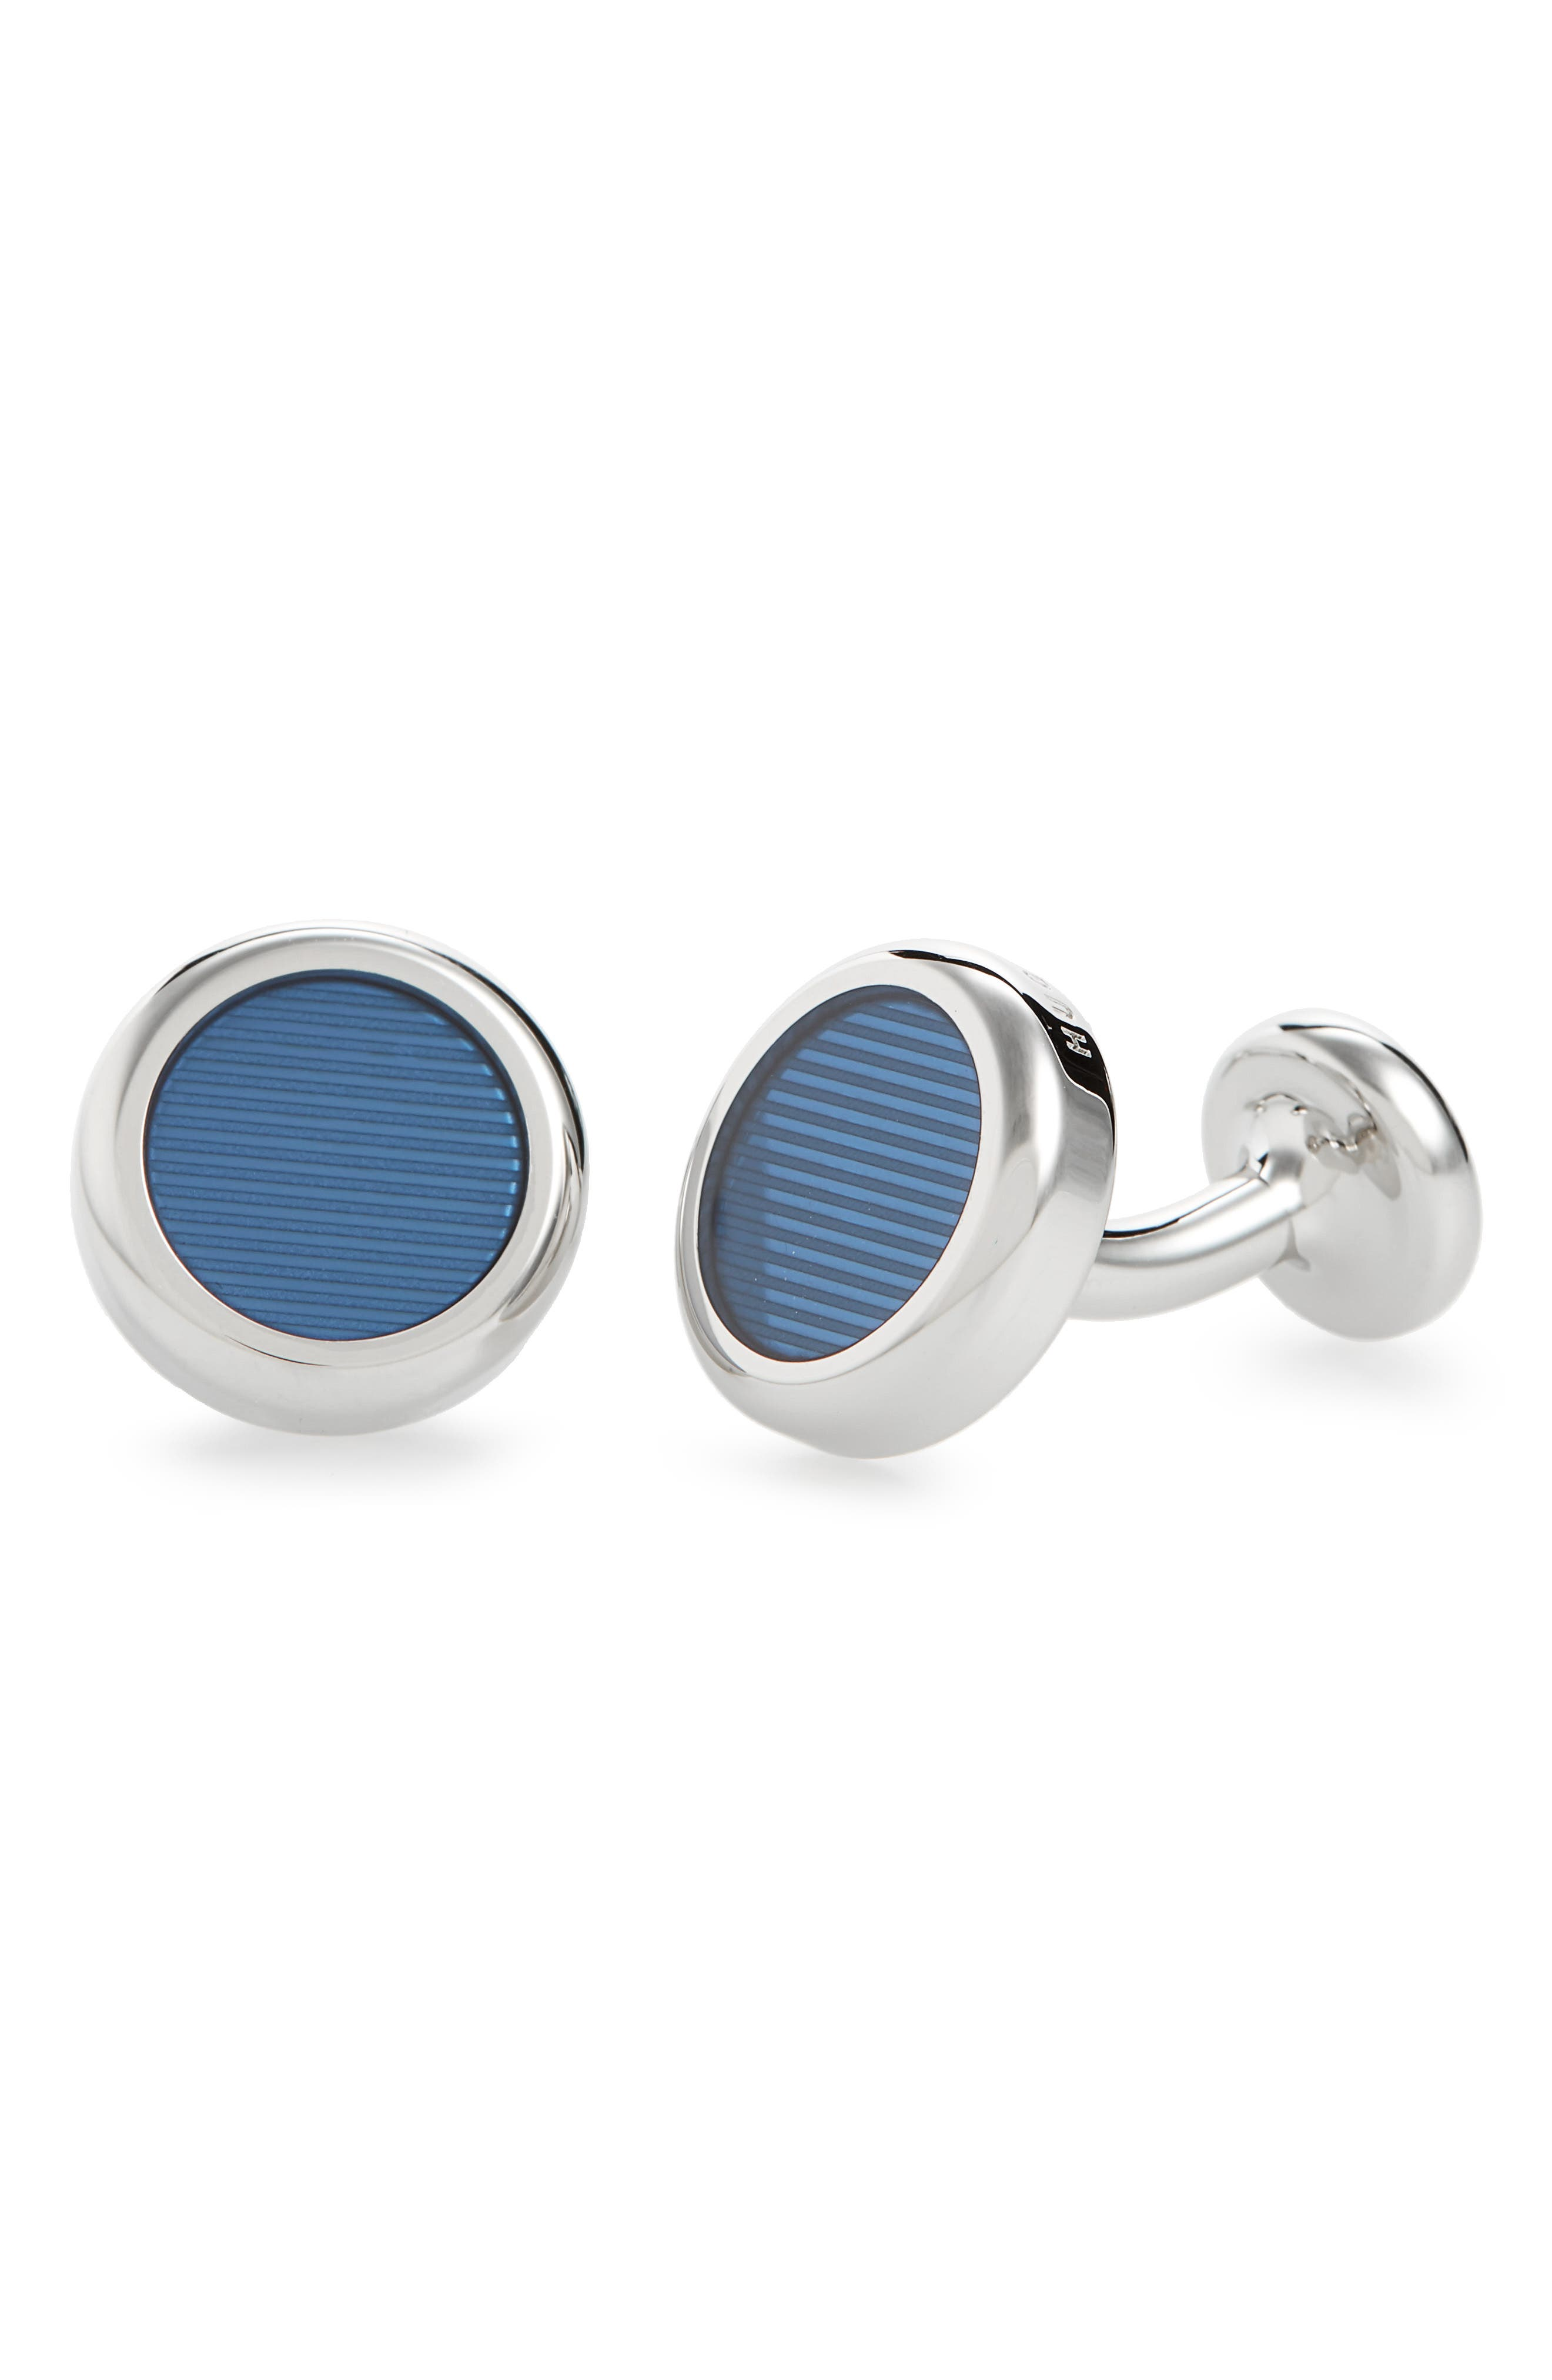 Gil Round Cuff Links,                             Main thumbnail 1, color,